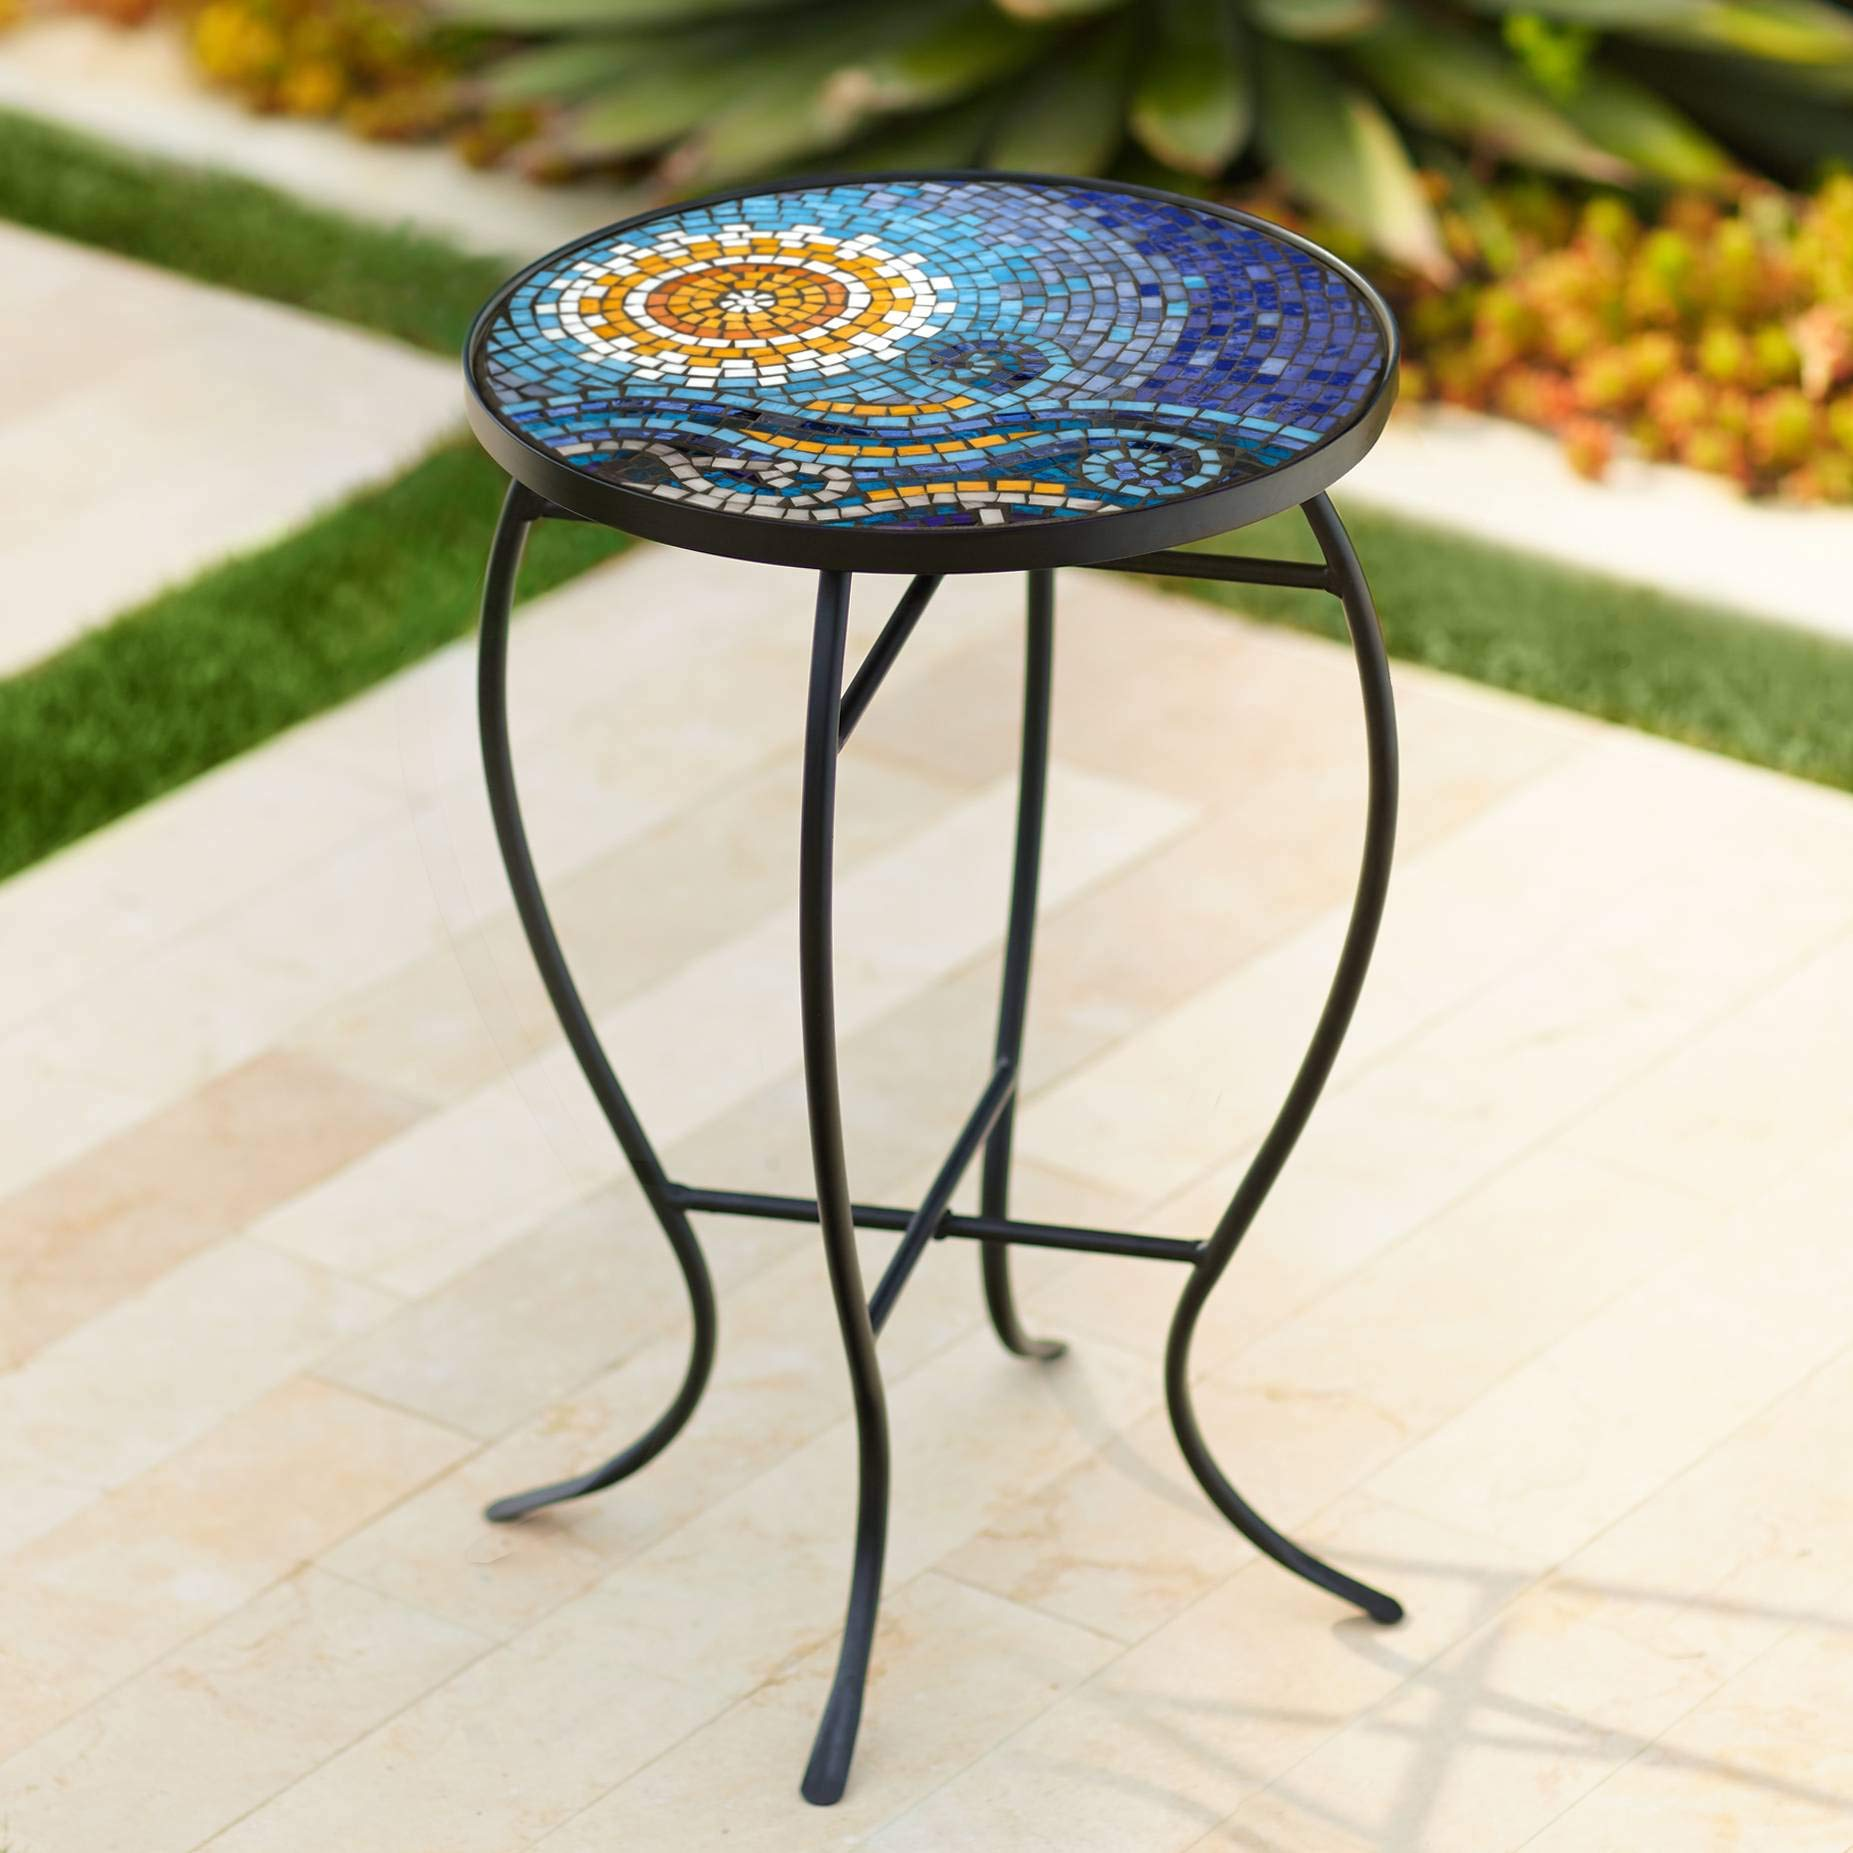 Teal Island Designs Ocean Mosaic Black Iron Outdoor Accent Table